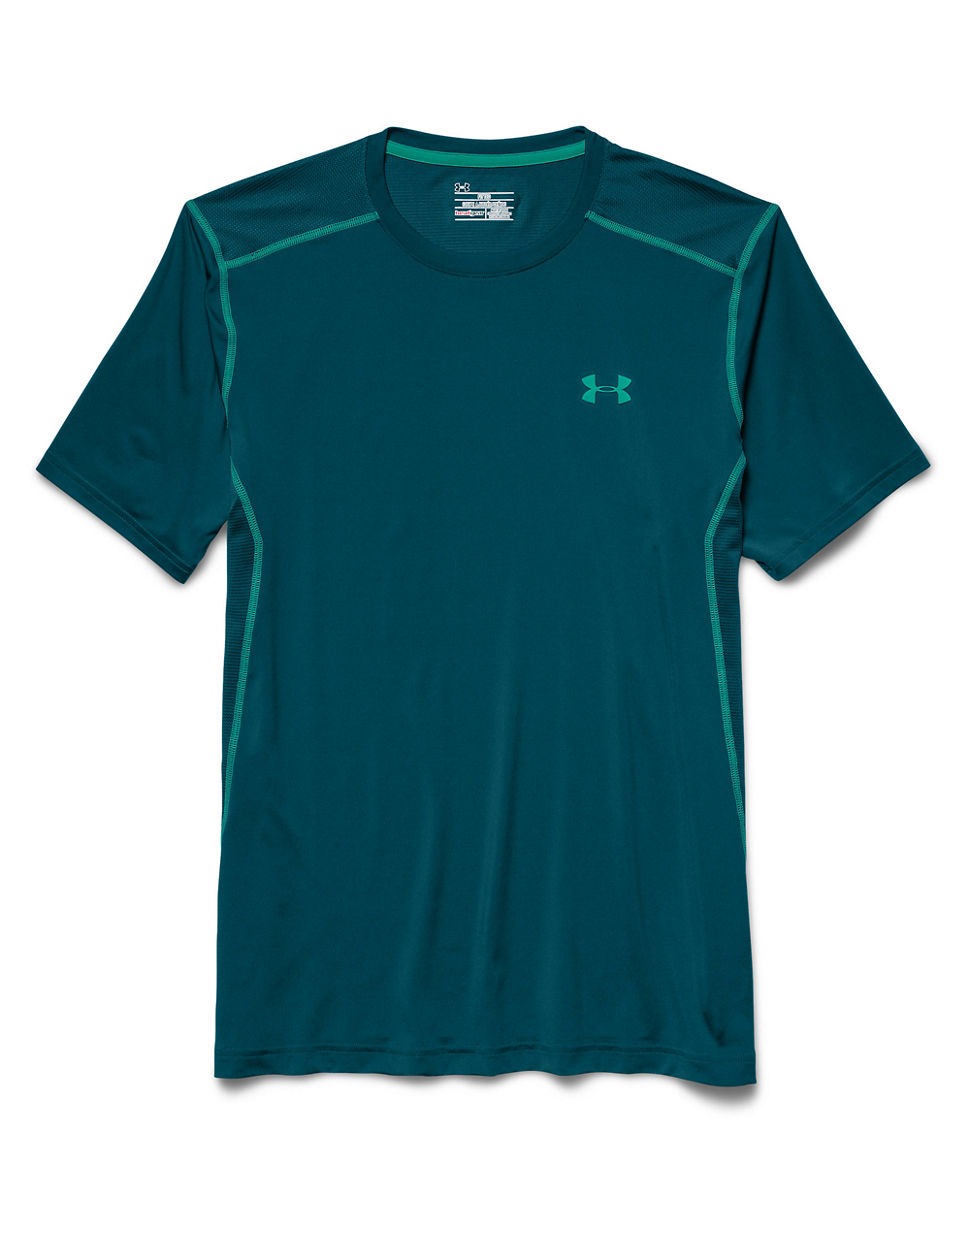 Lyst under armour raid t shirt in green for men for Teal under armour shirt